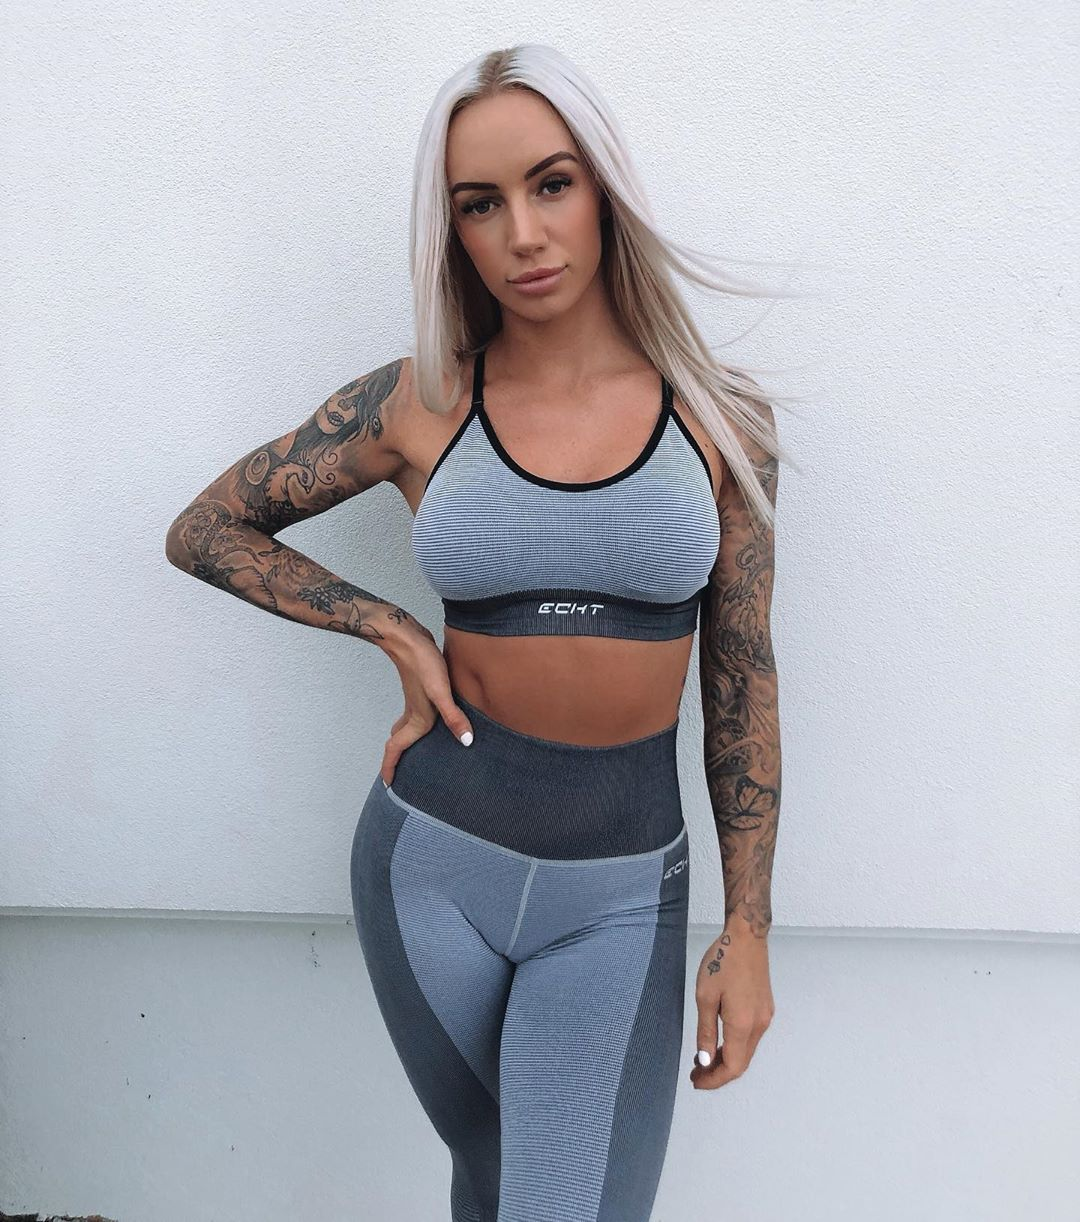 Court-Walding-Wallpapers-Insta-Fit-Bio-5